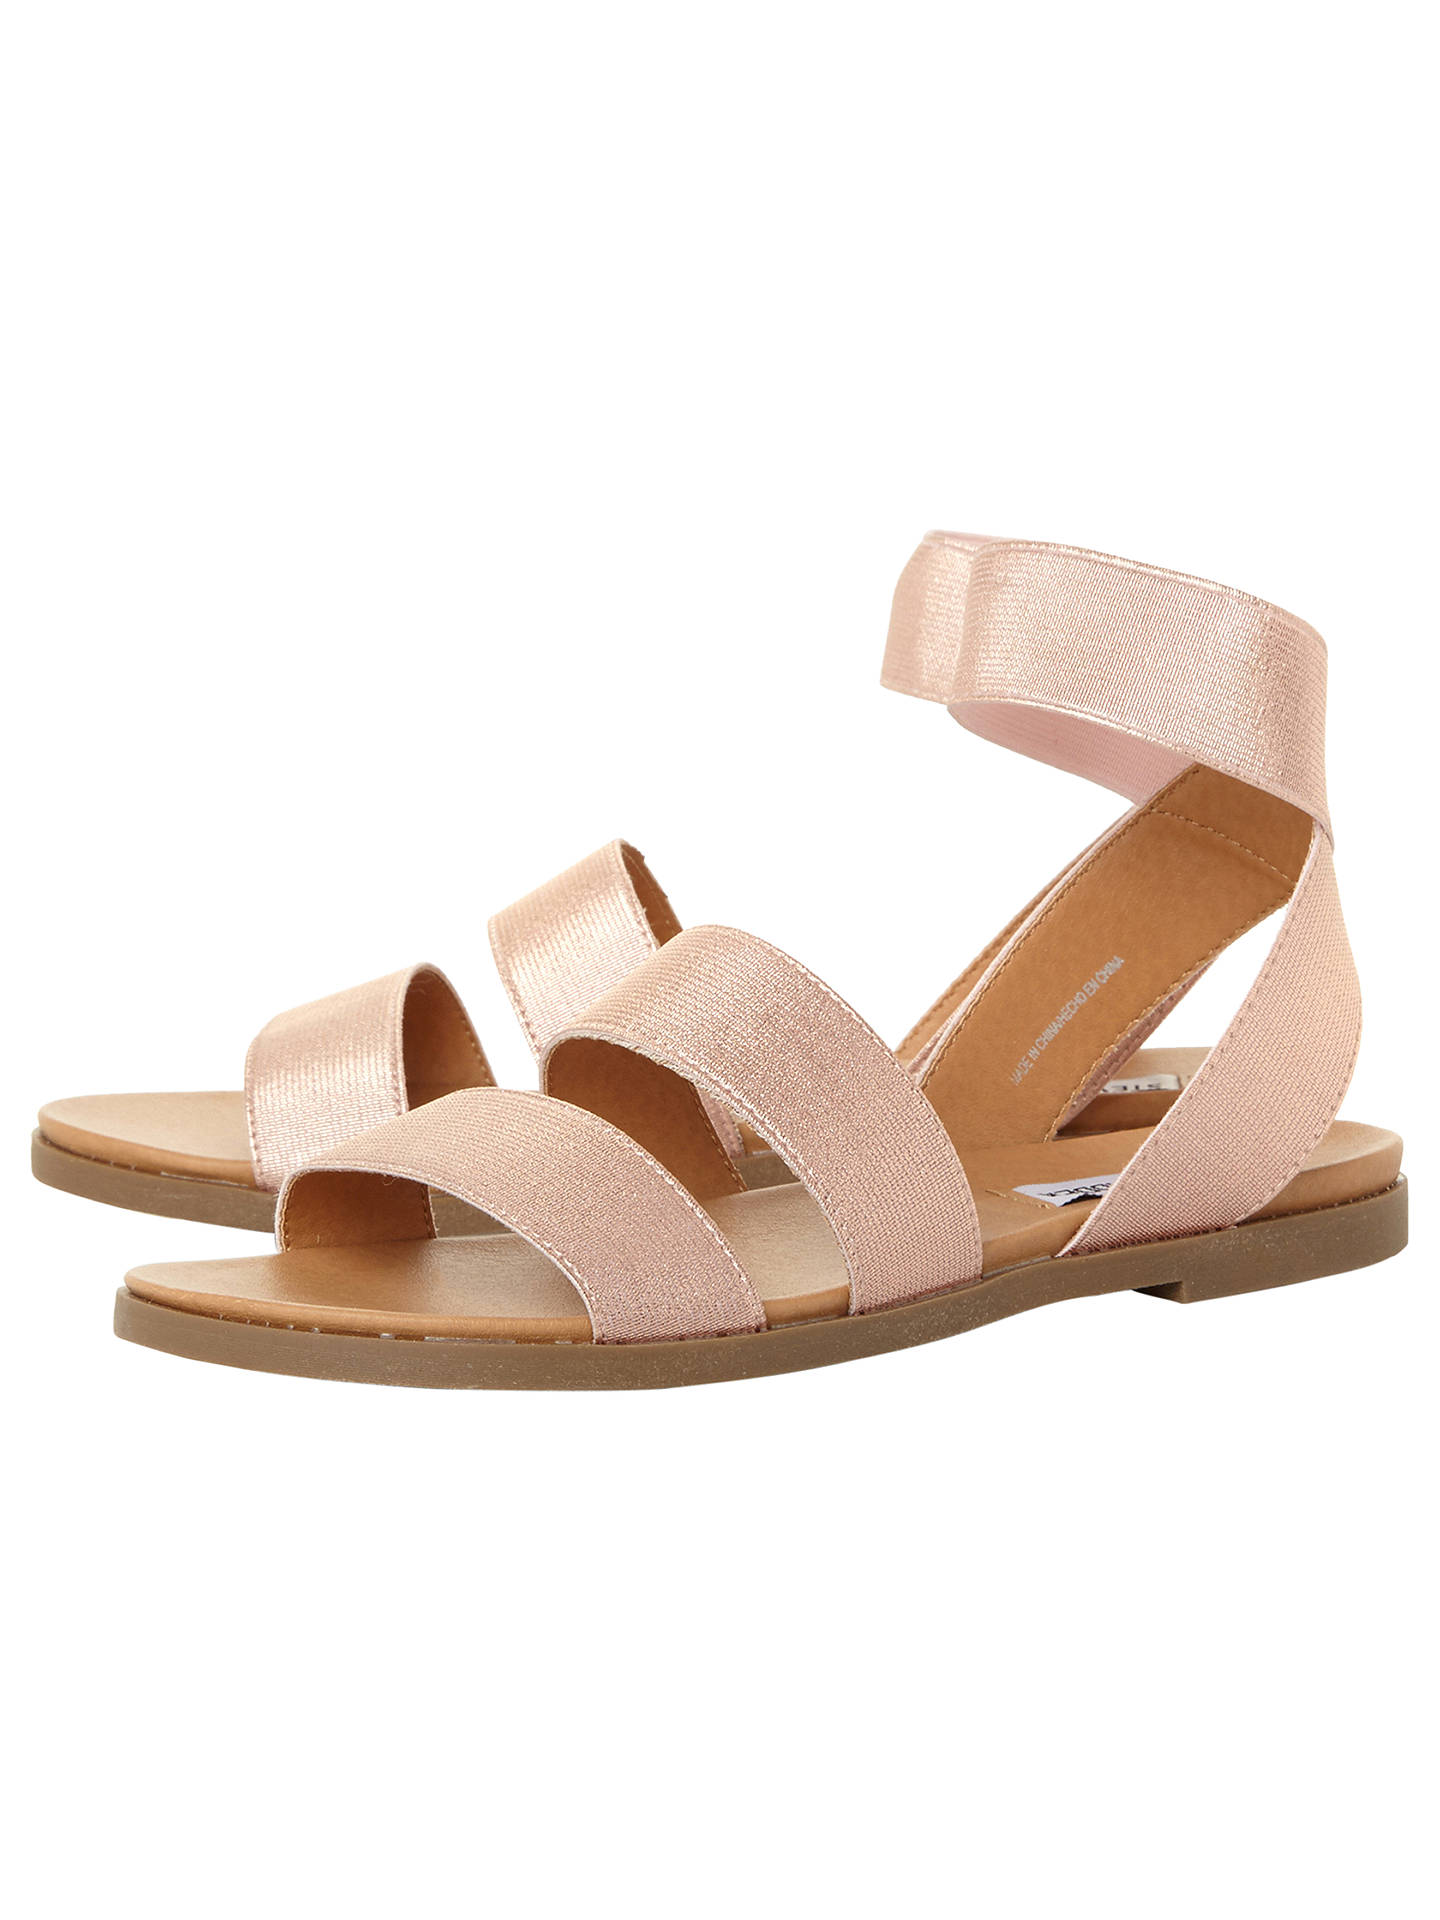 28d365b2764 Steve Madden Delicious Strappy Flat Sandals at John Lewis   Partners